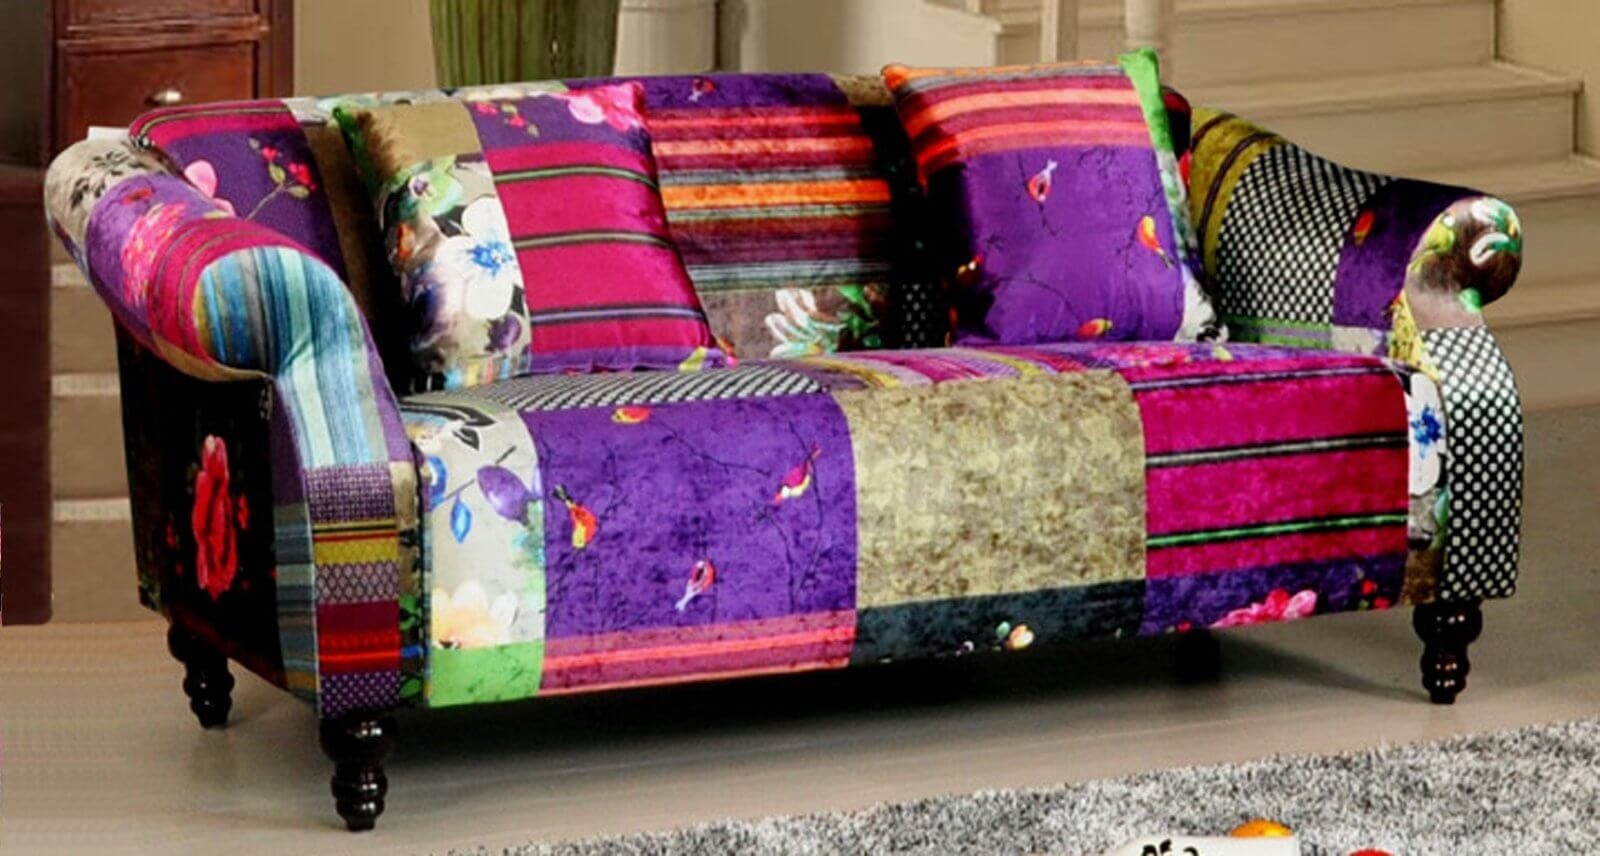 Full Size of Sofa Patchwork Bed Pink Dfs Doll The Range Ebay Couch Diy Cover Gumtree Slipcovers Covers Uk Multicoloured Fabric 3 Seater Avici Shout Home Affaire Big Sofa Sofa Patchwork